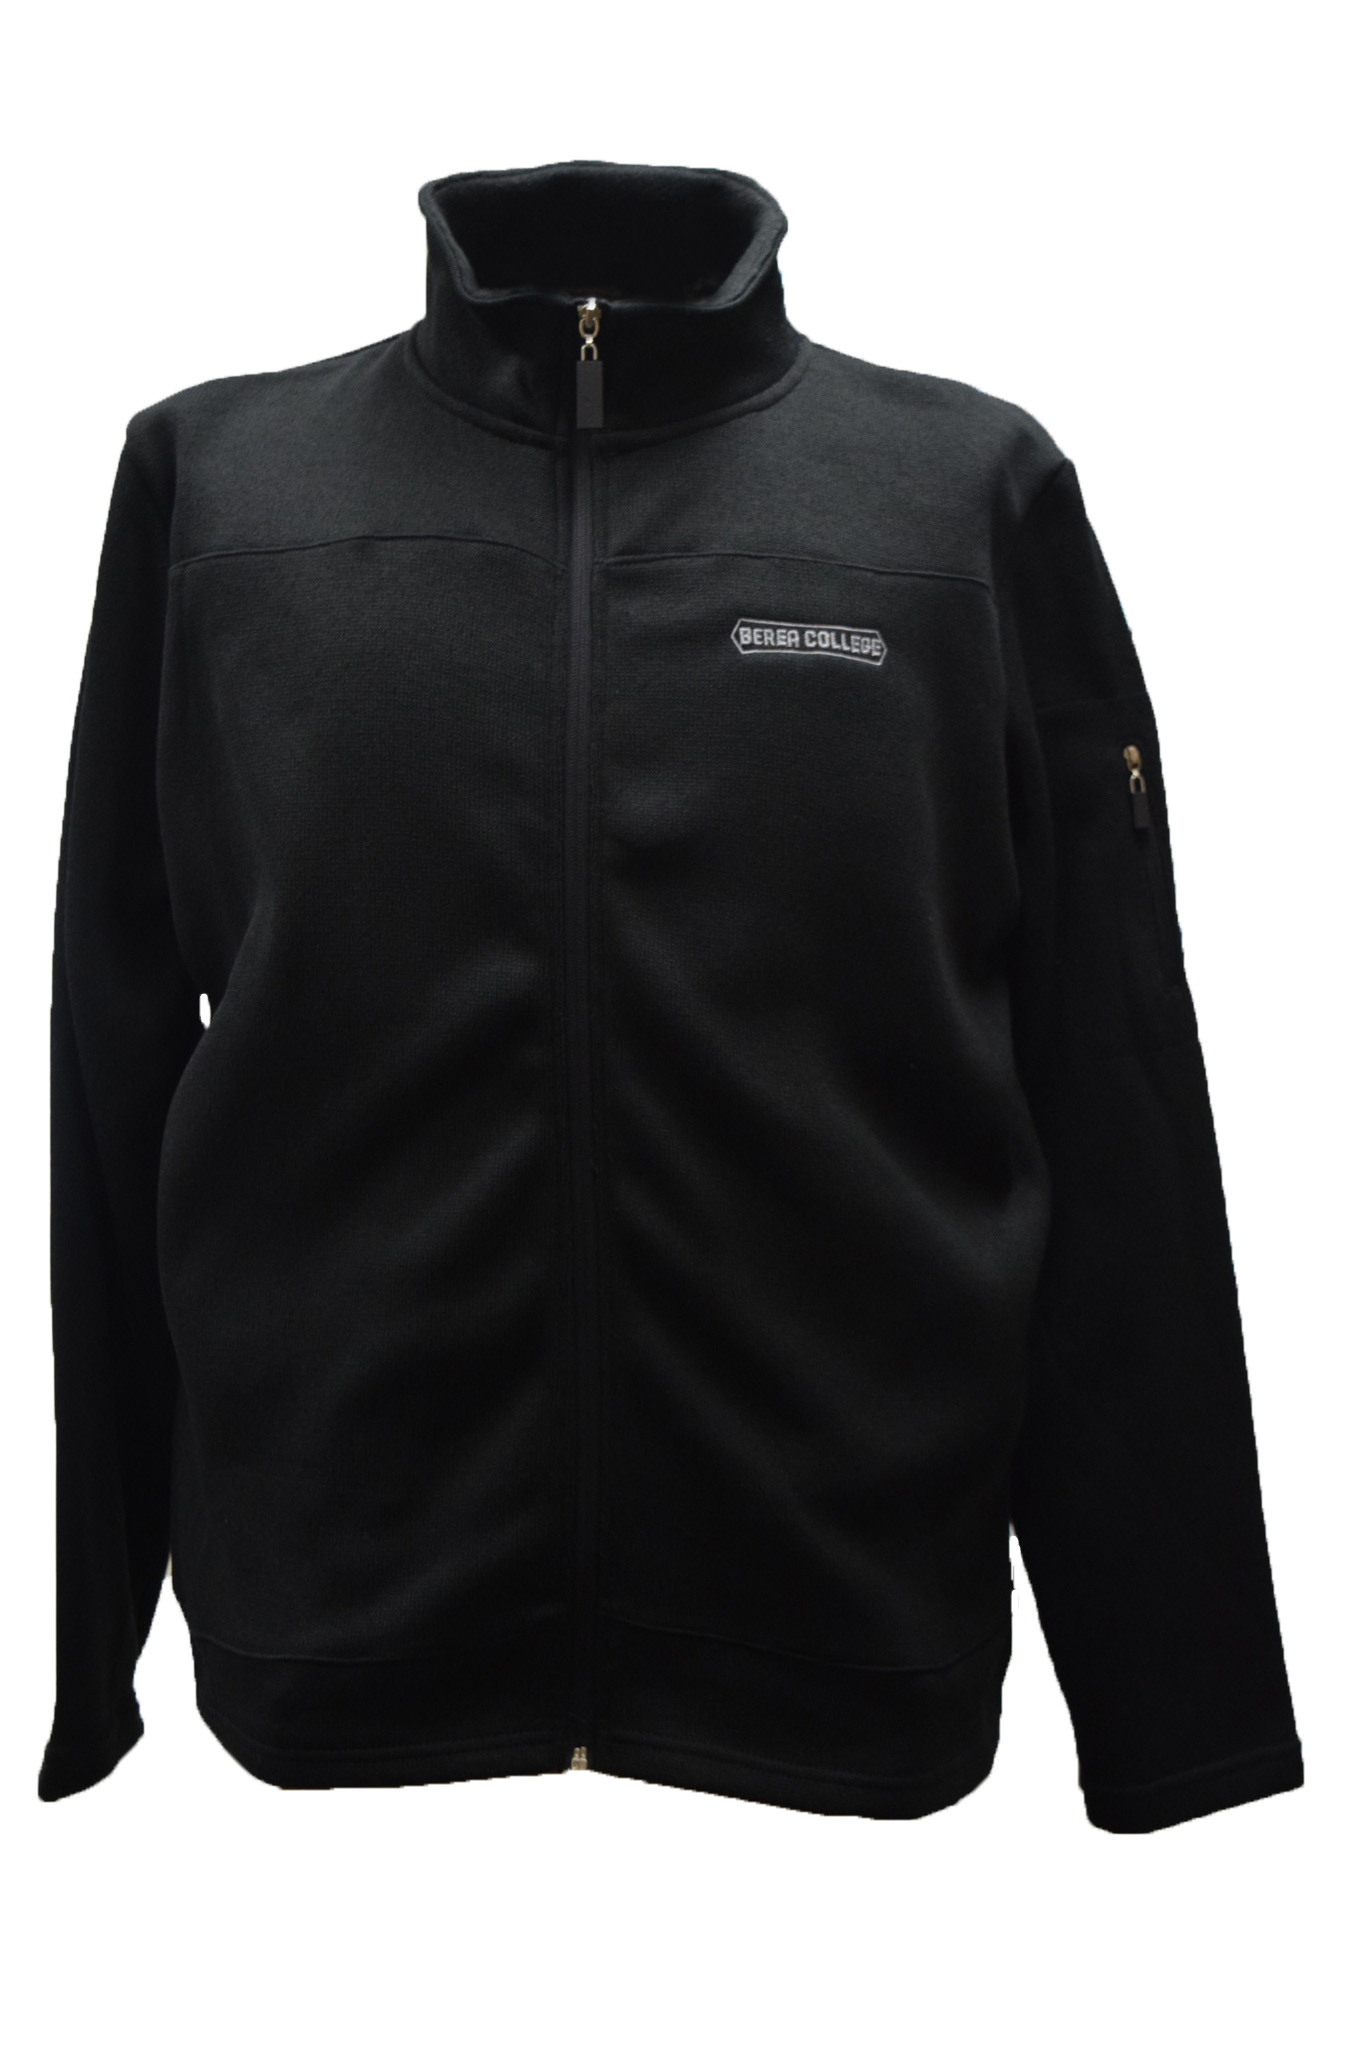 Black Berea College Jacket-1